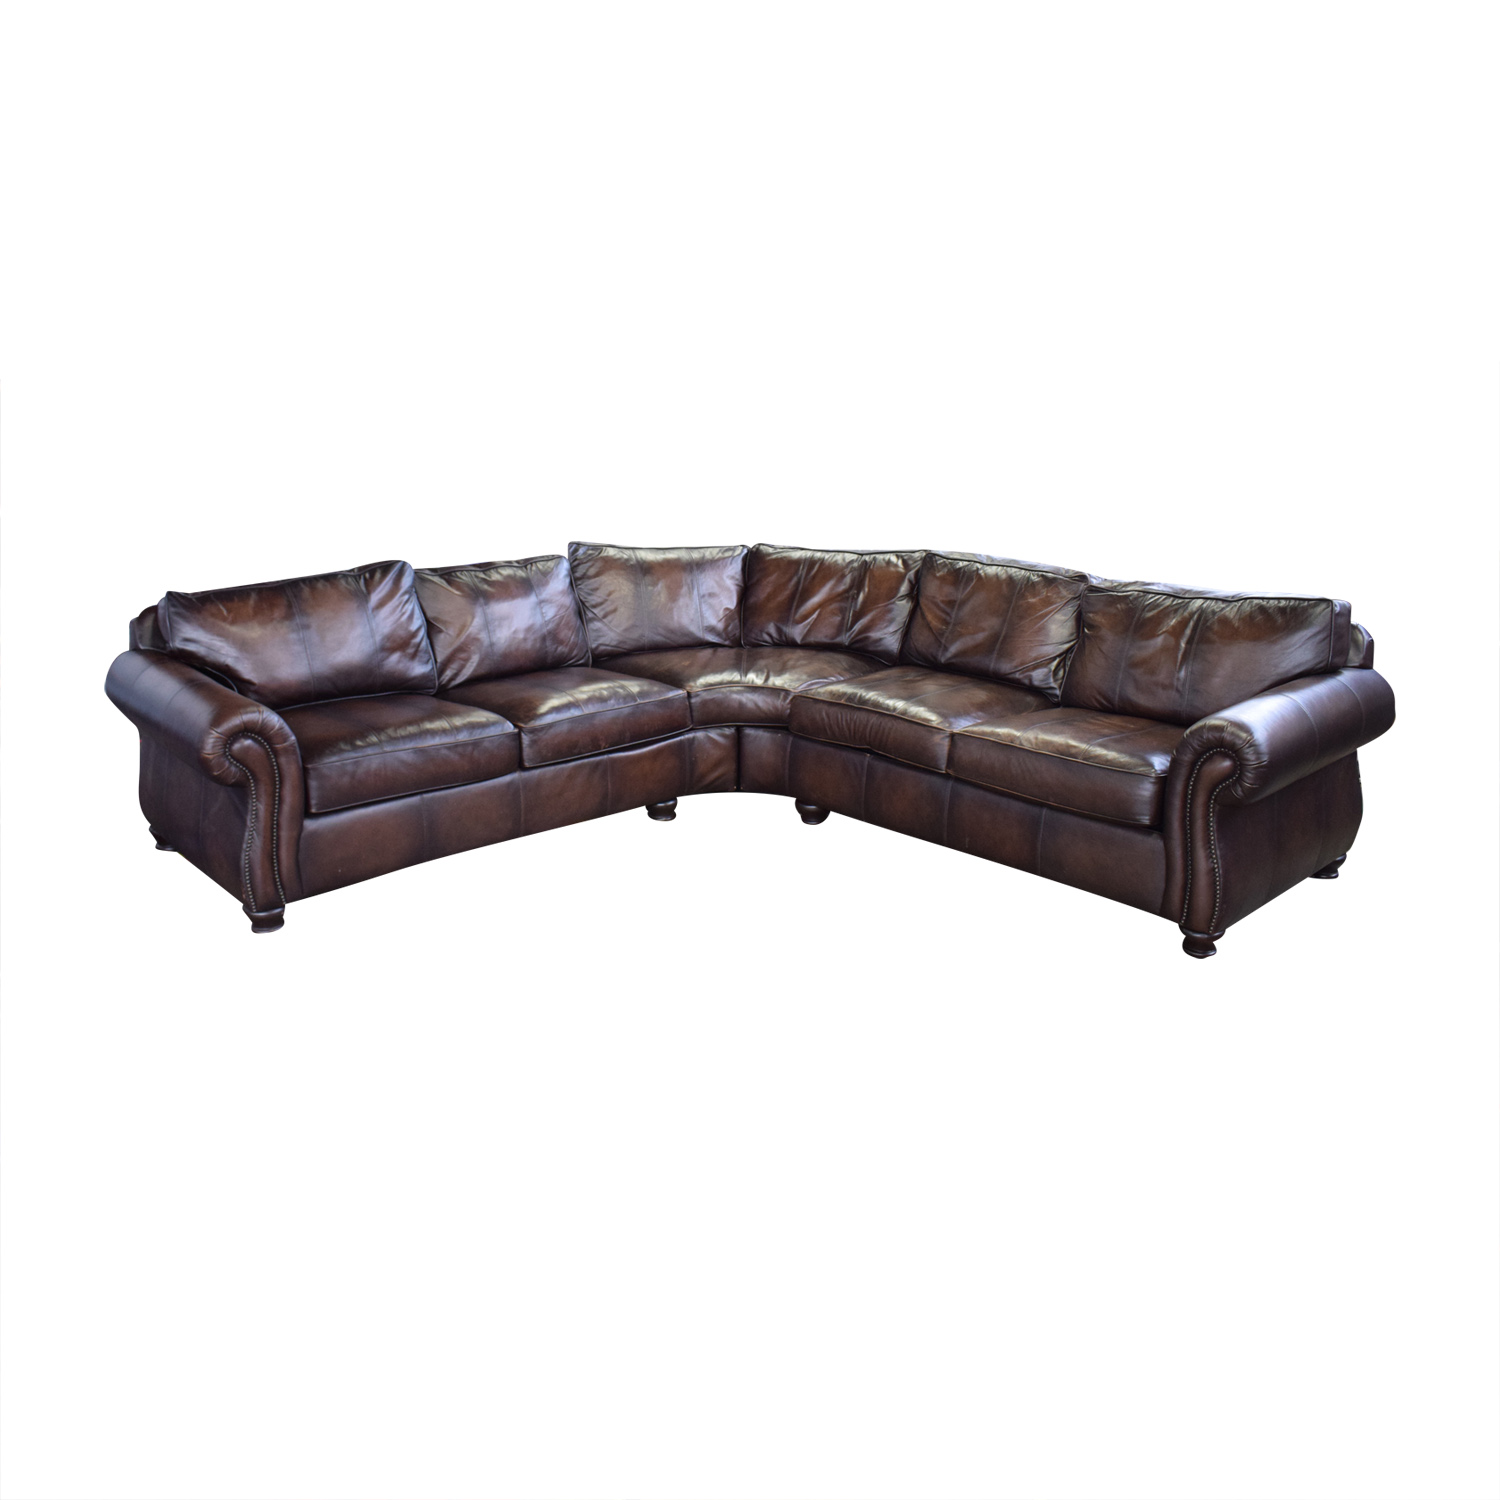 Bernhardt Bernhardt Brown Leather Sectional used